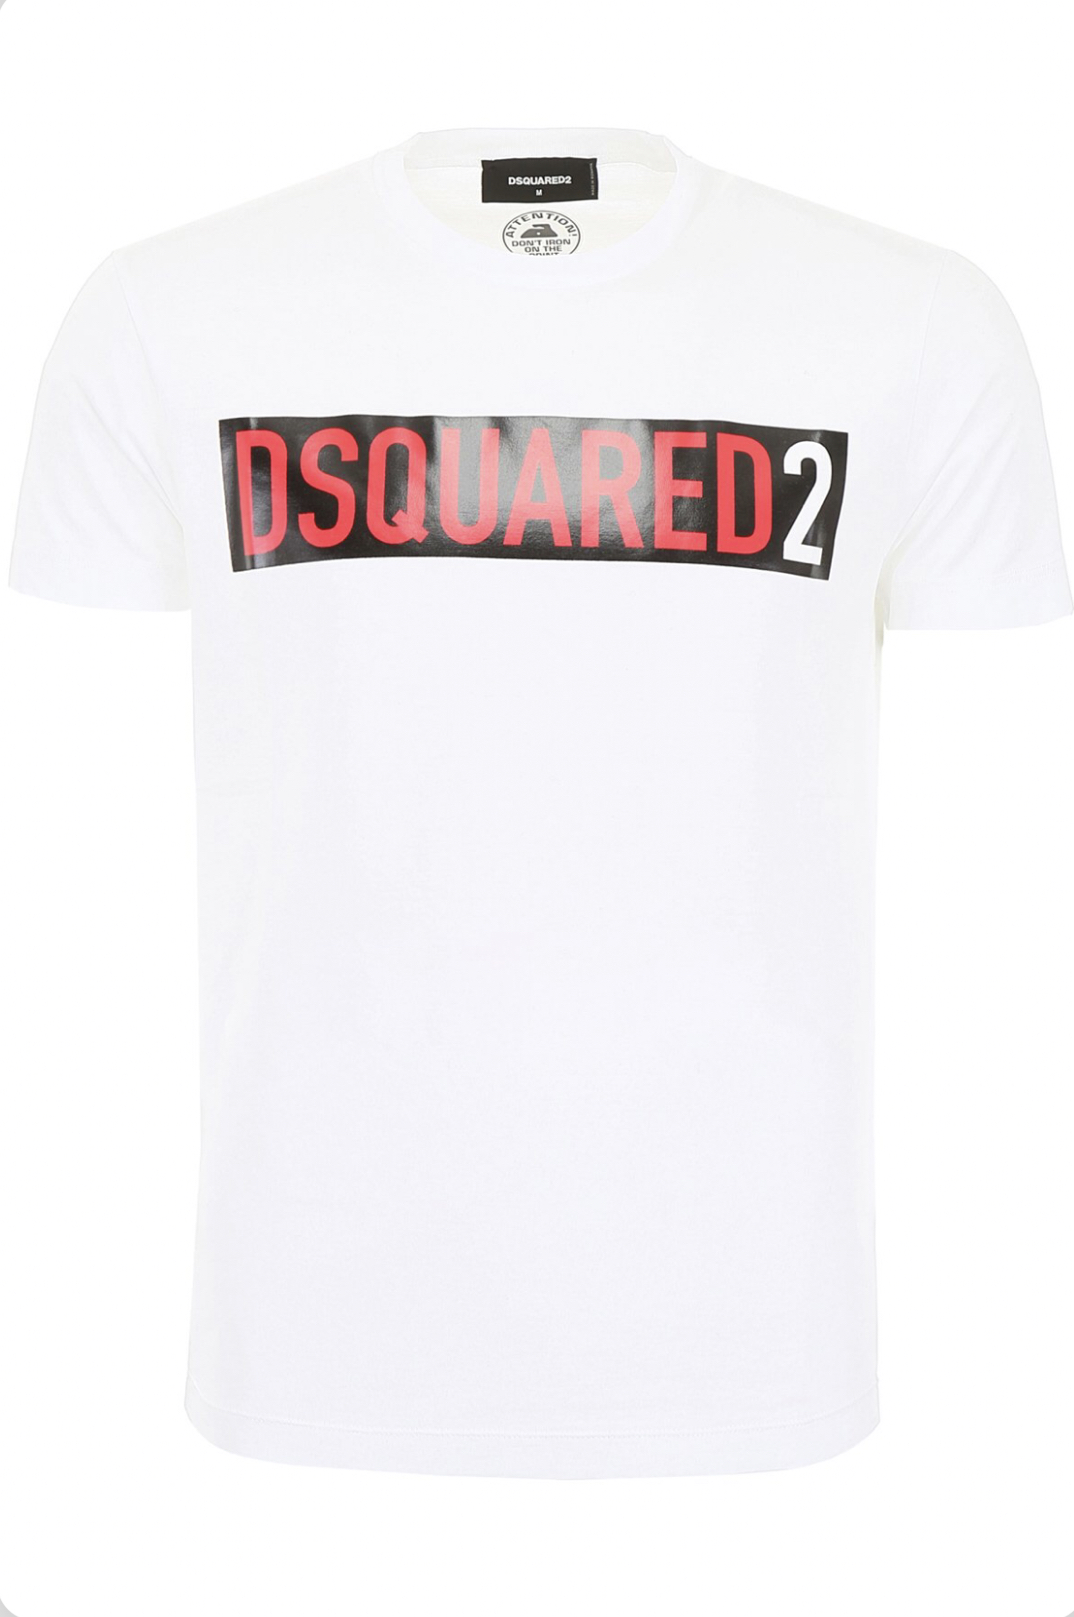 check out 61203 cce70 DSQUARED2 uomo bianca